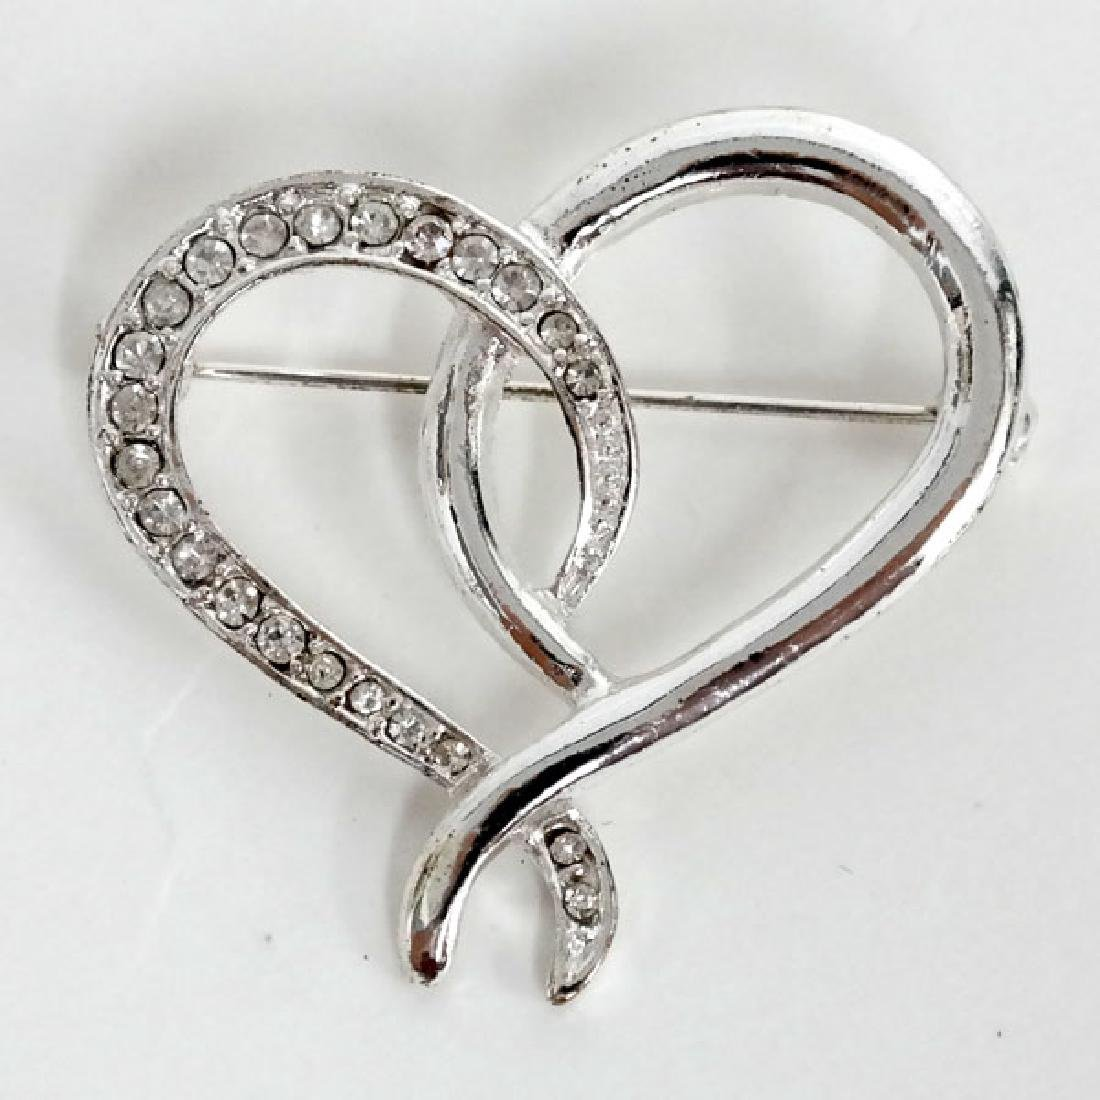 Silver tone HEART shaped brooch with white rhinestones